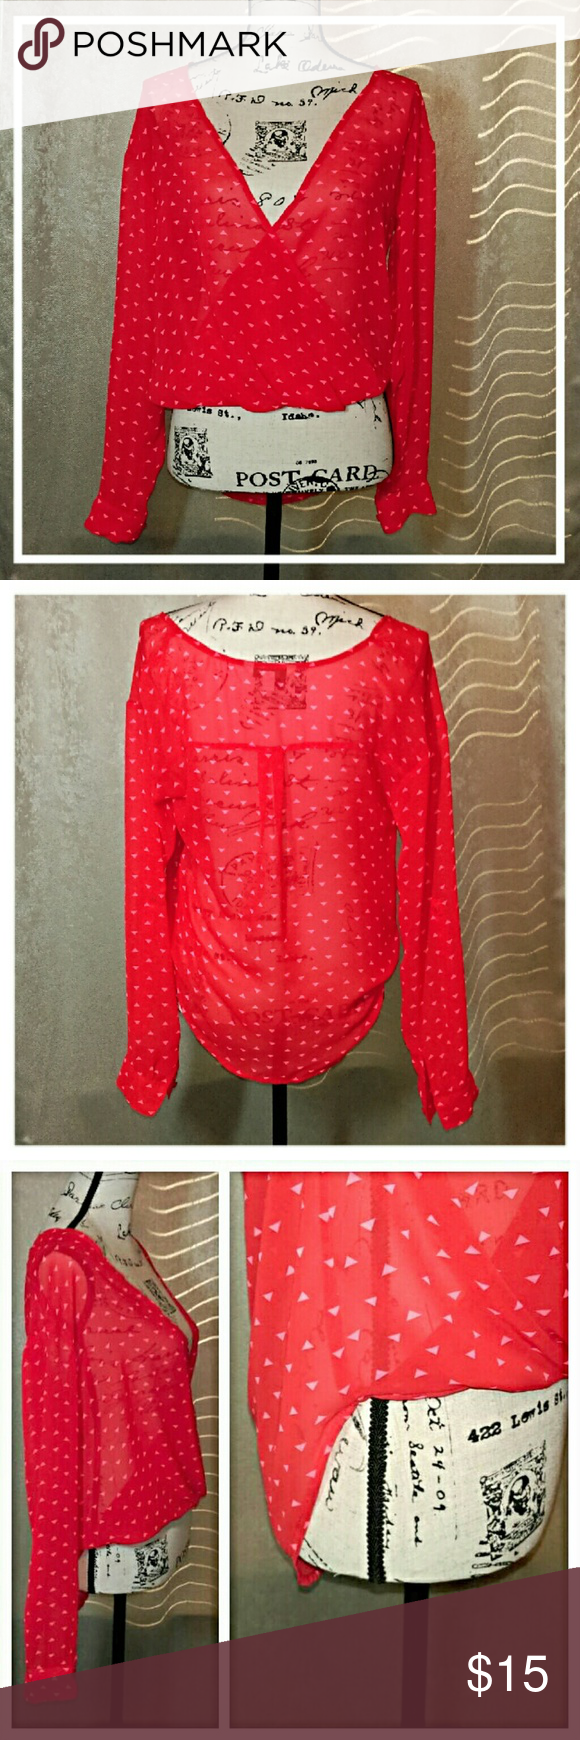 Fun Bright Red Sheer Blouse Wrap style front that folds under at the bottom in the front and hangs longer in the back. Cute tiny triangle print all over. Sleeves have button closure at wrist and also fold up to 3/4 sleeve with built-in in strap and button. Excellent Condition! No rips or snags. Decree Tops Blouses